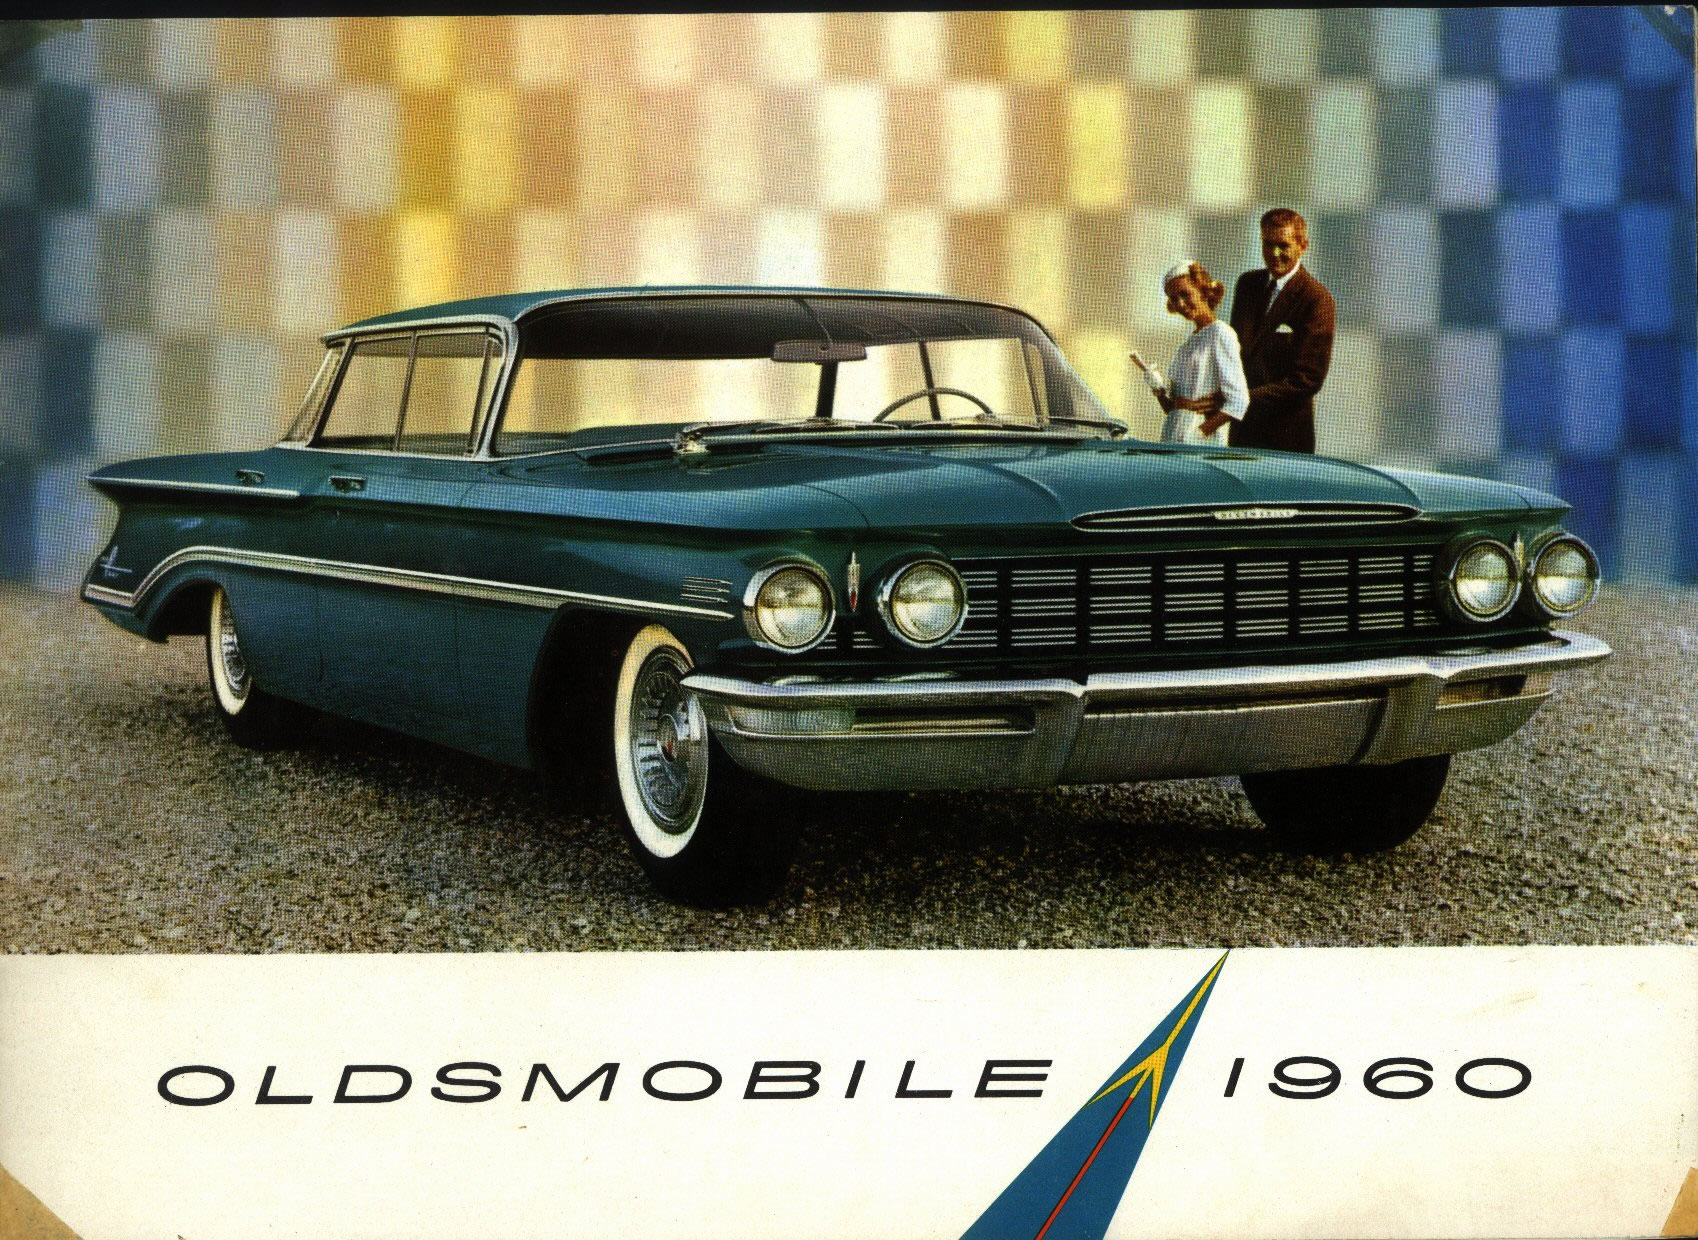 Car Brochures - 1960 Oldsmobile brochure / 60Olds-01.JPG